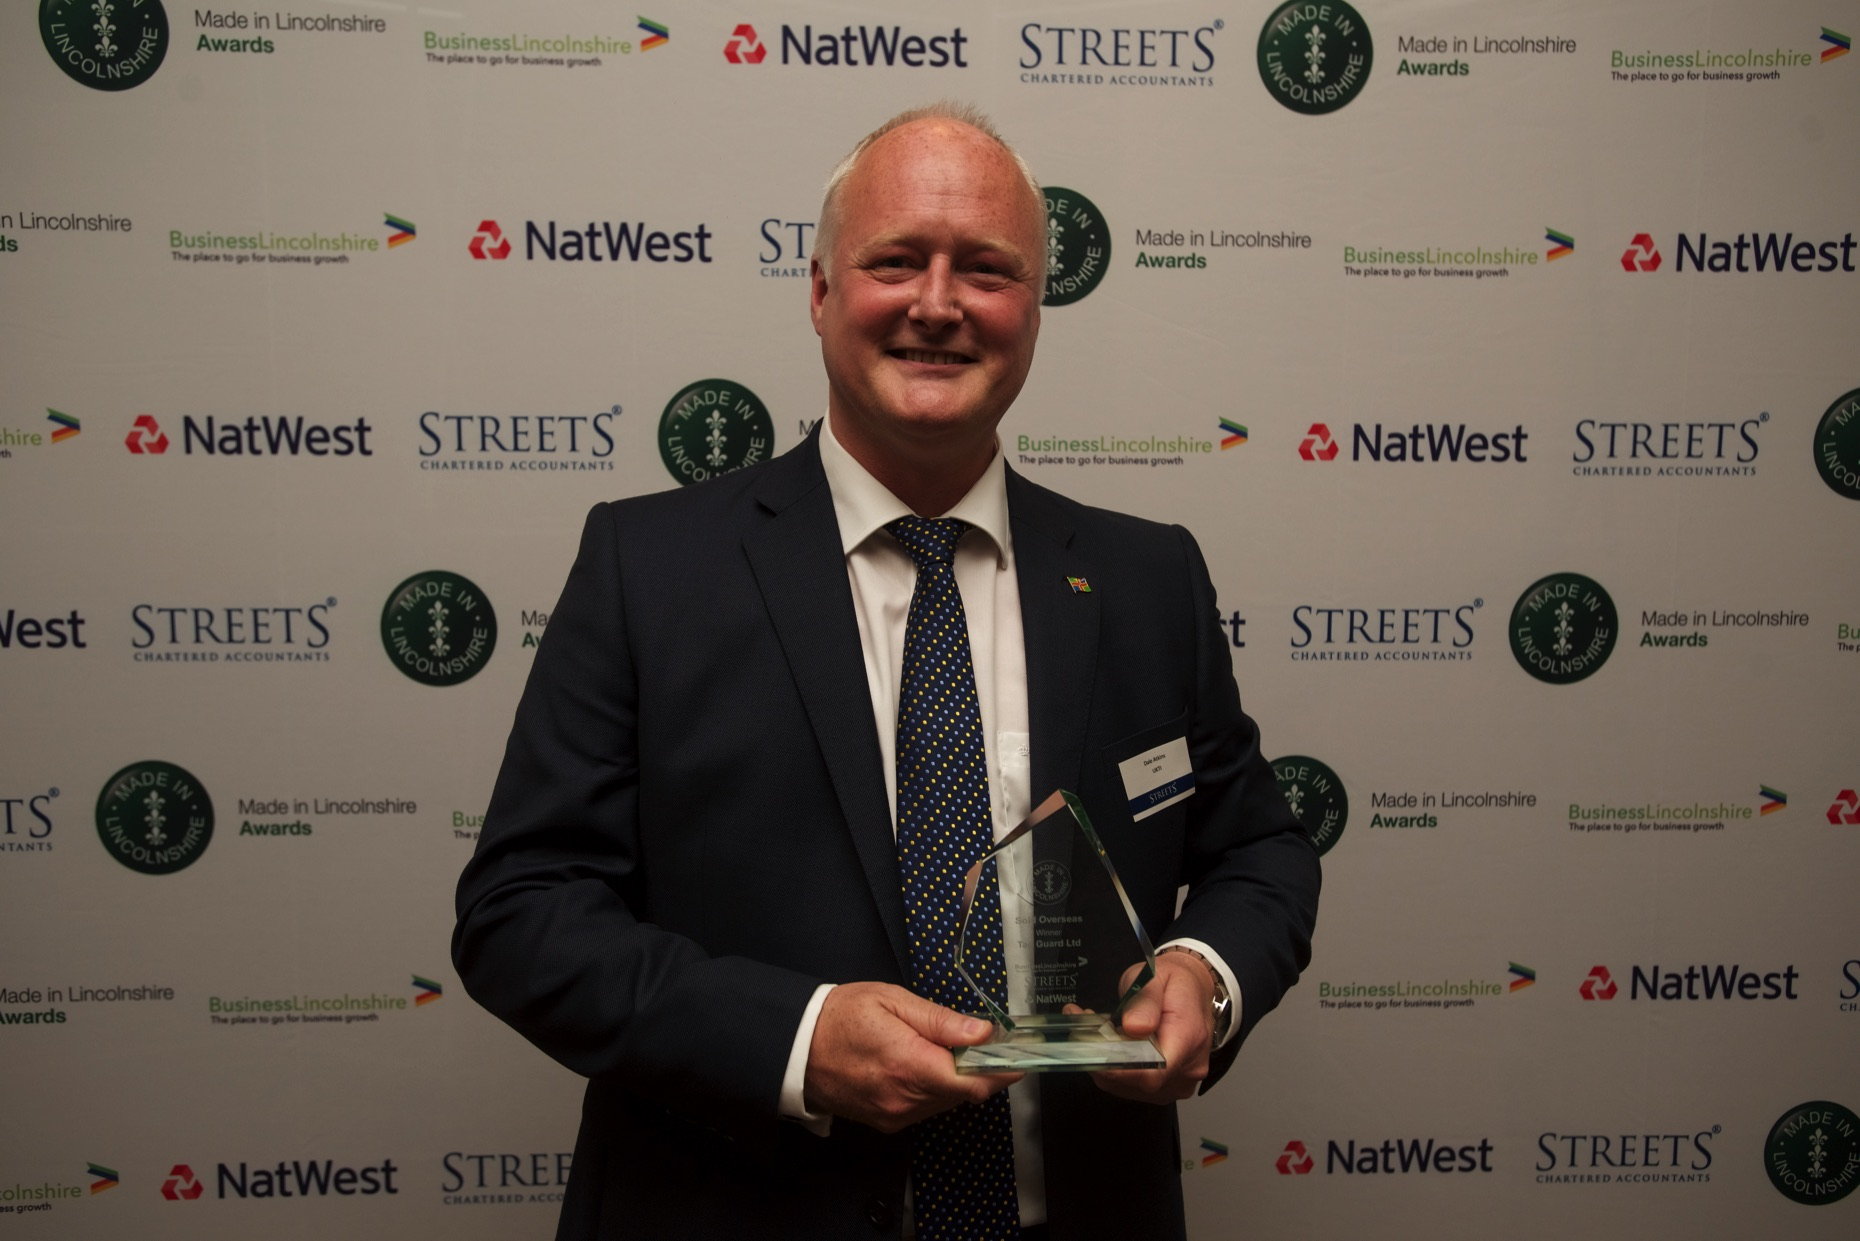 Tag Guard were unable to attend to collect the award for Made in Lincolnshire Sold Overseas. Dale Atkins, International Trade Advisor for UKTI accepted on their behalf.